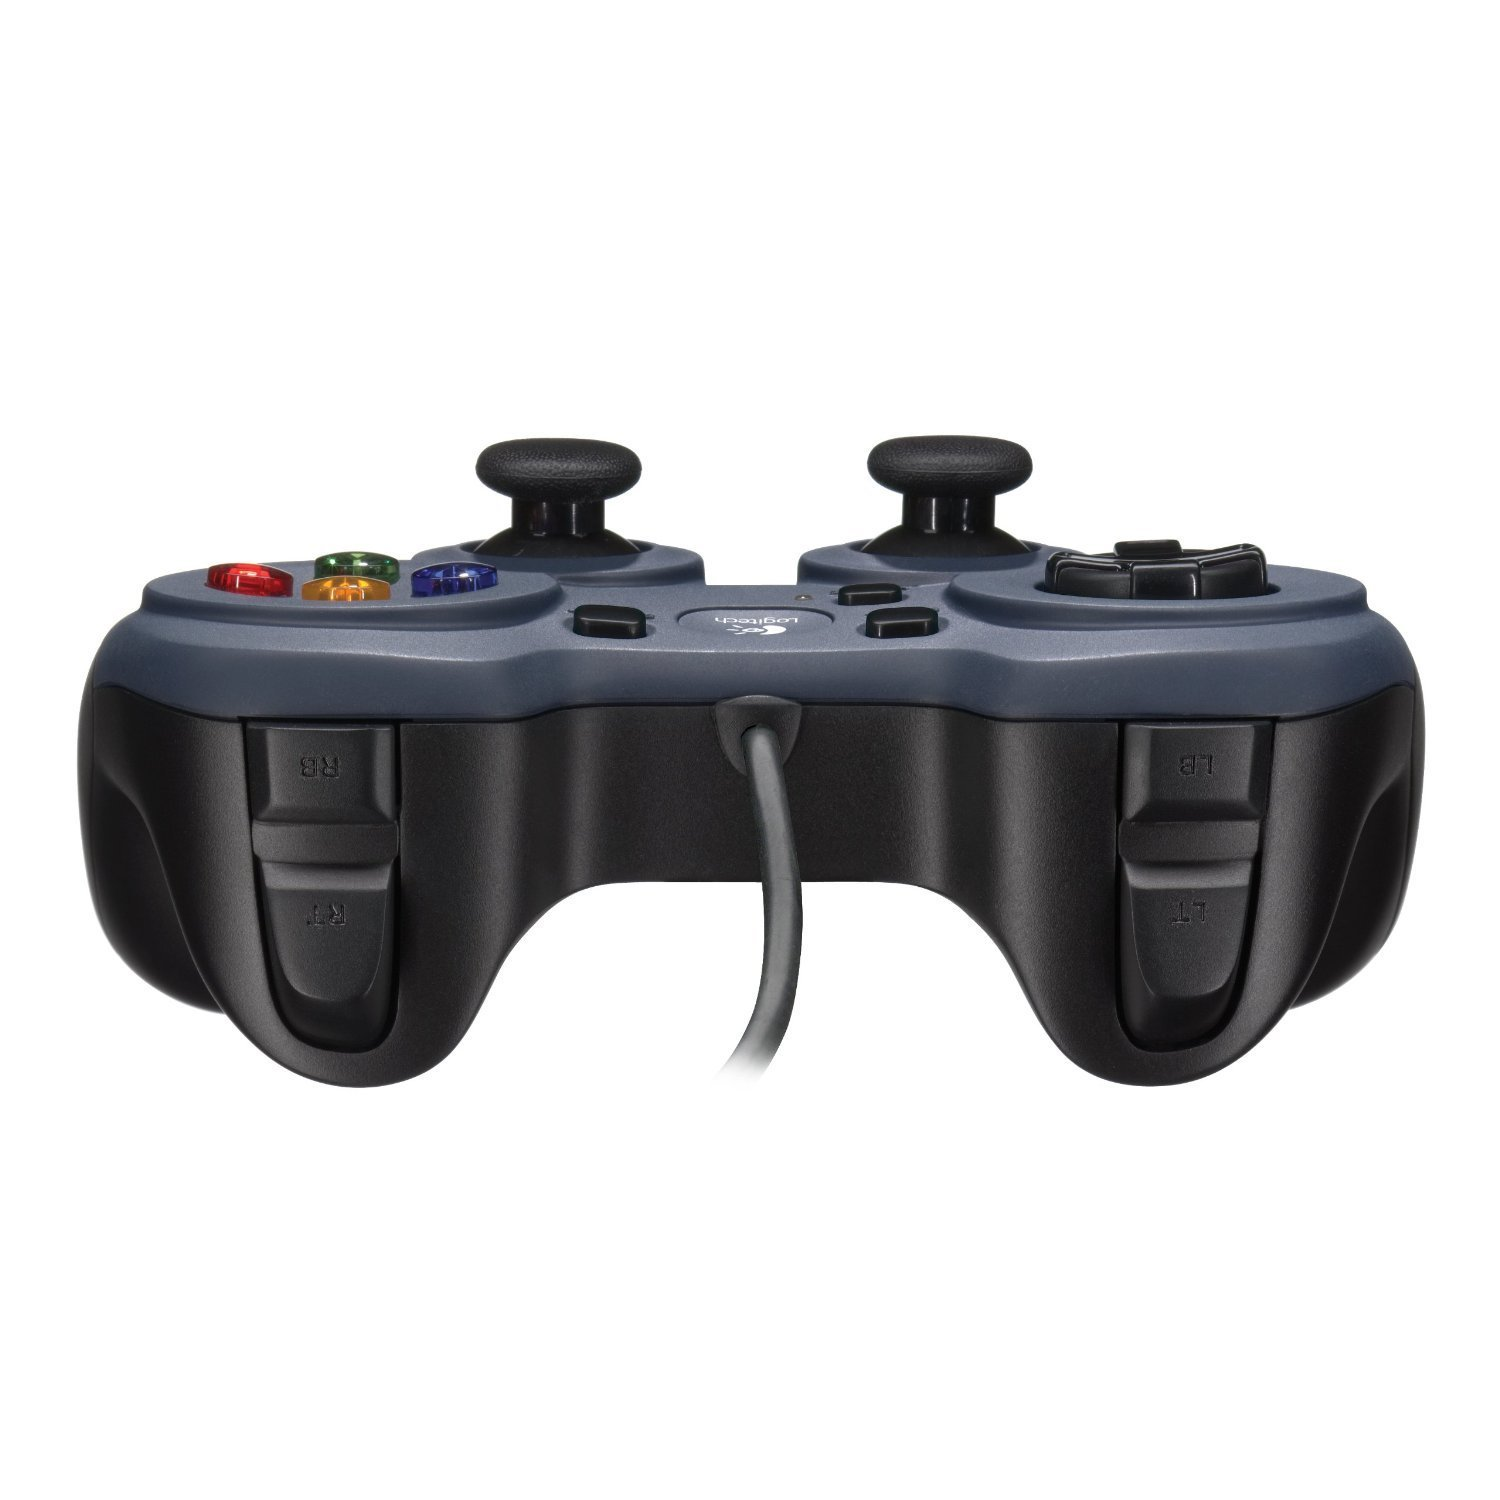 Logitech-Gamepad-Wired-Wireless-Gaming-Controller-All-Model-For-PC-Android-TV-VS thumbnail 8